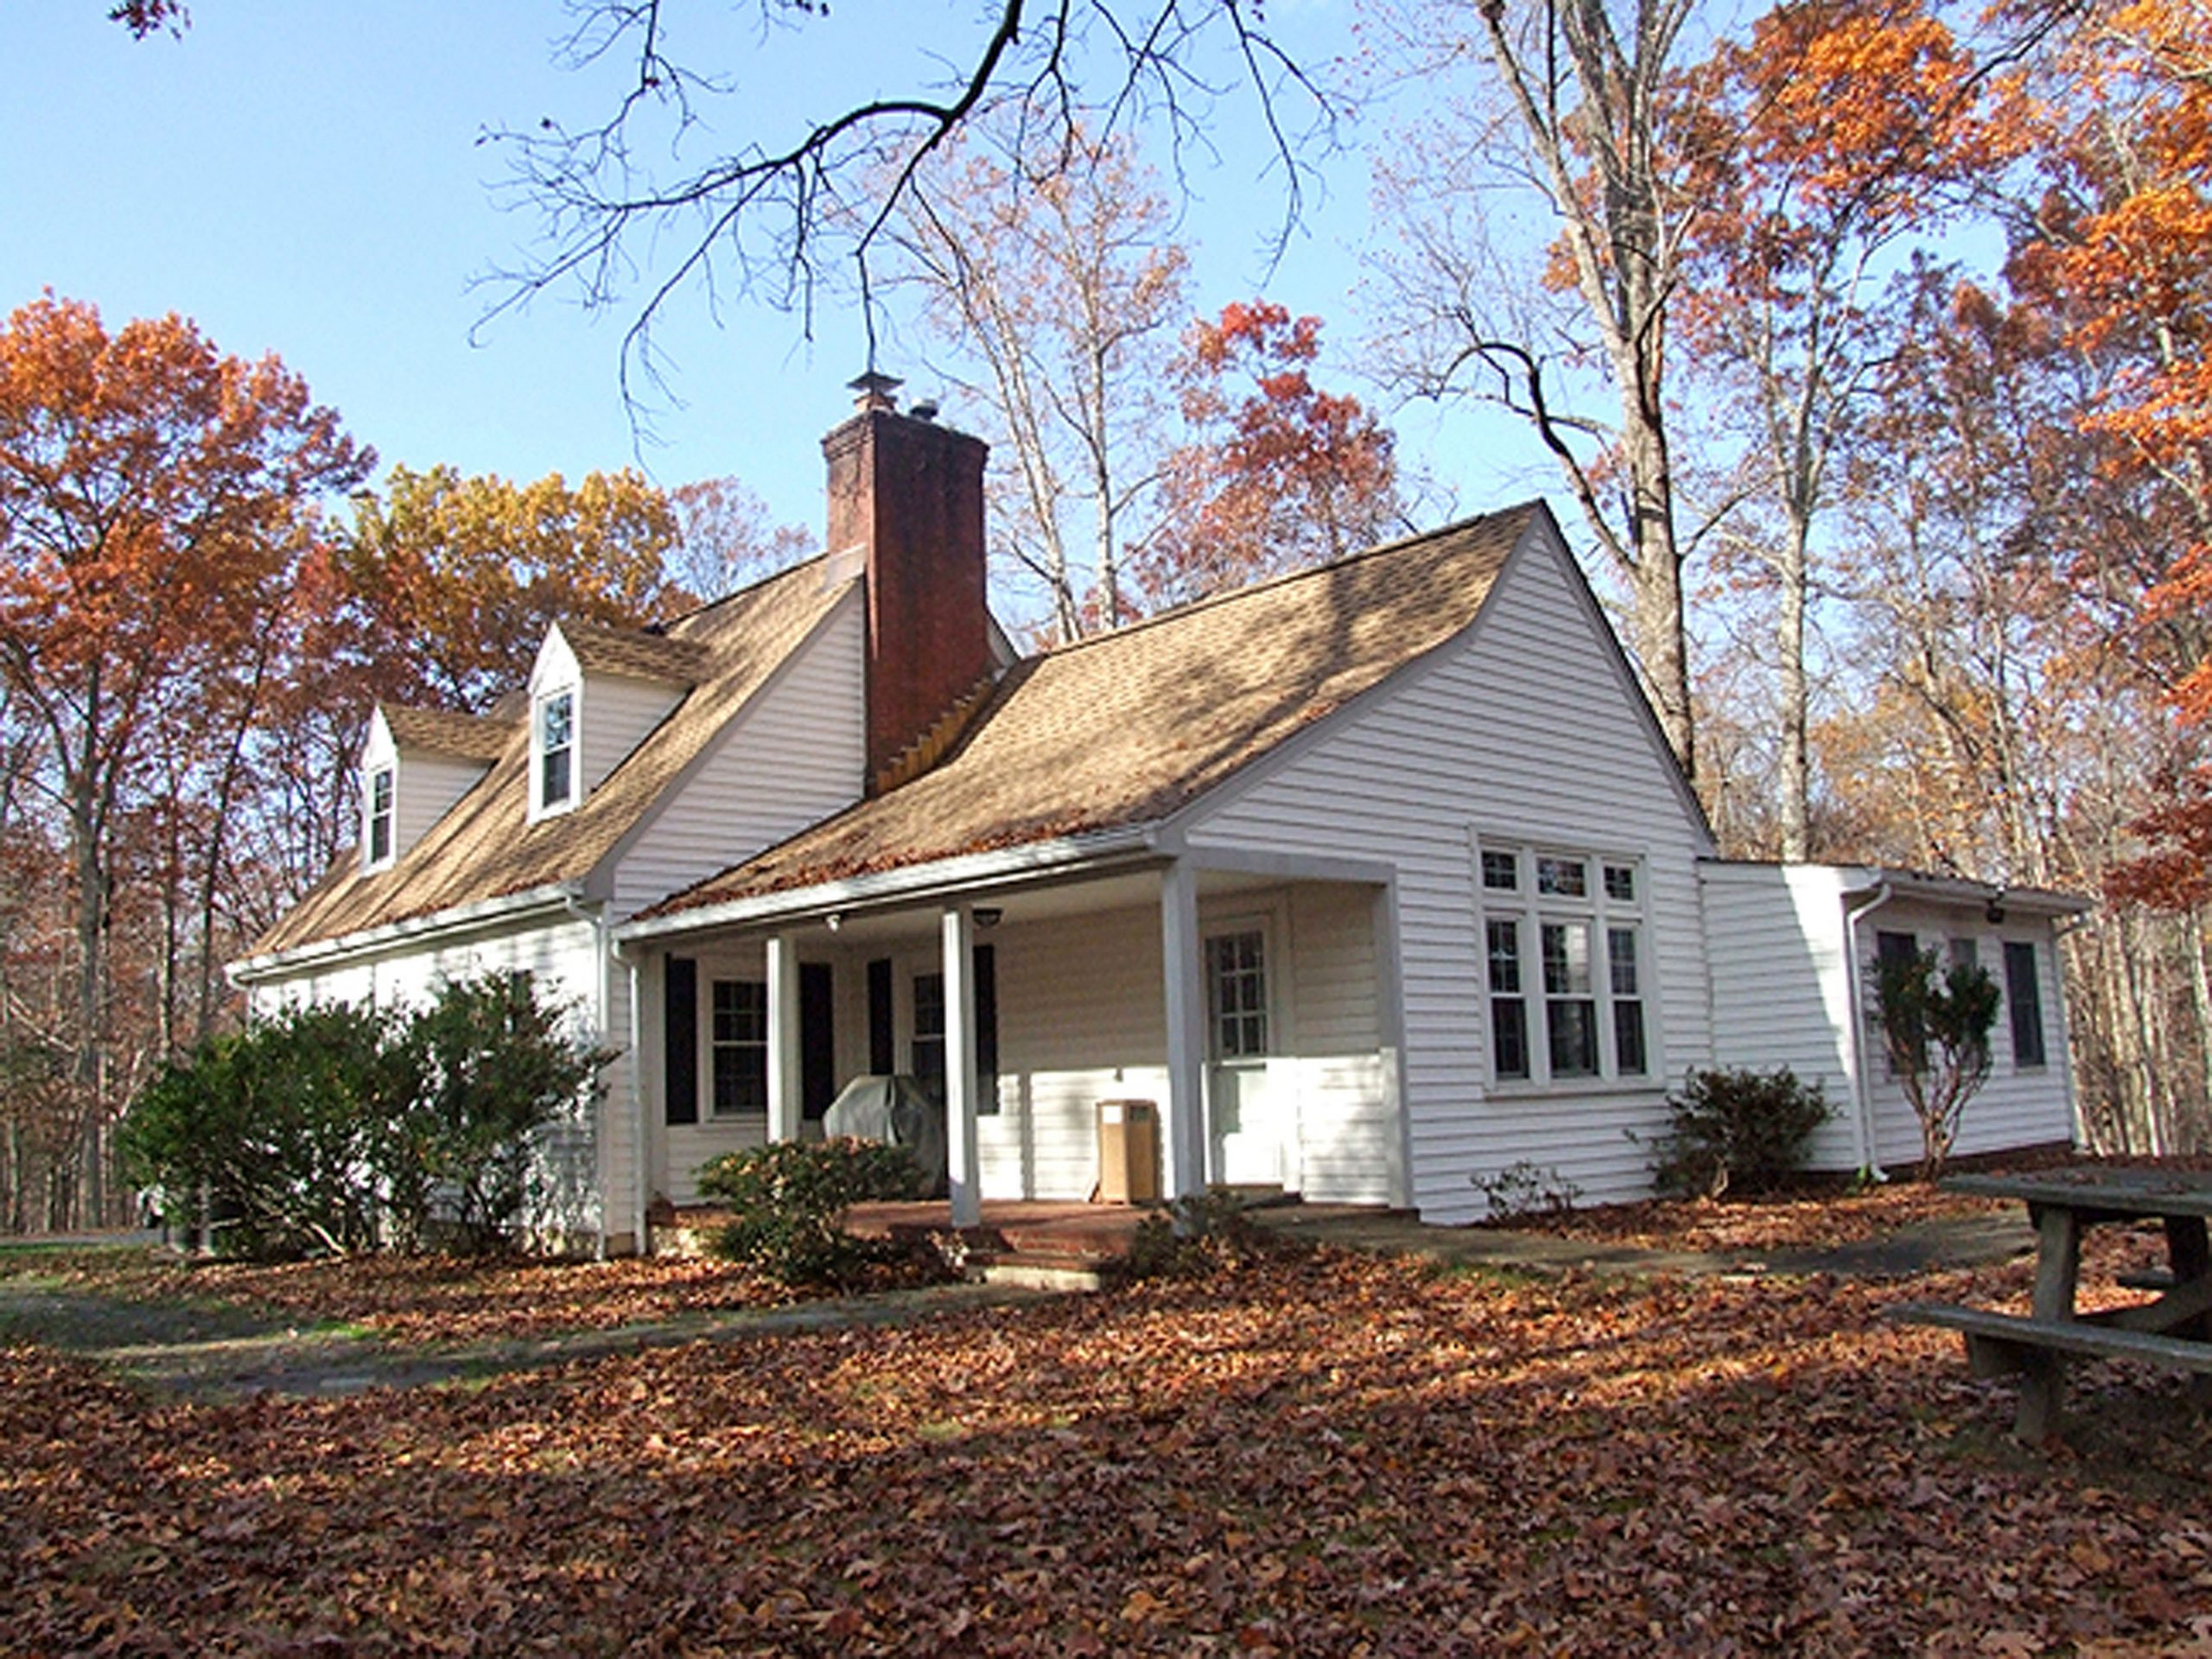 Prince William Forest Park Historic District